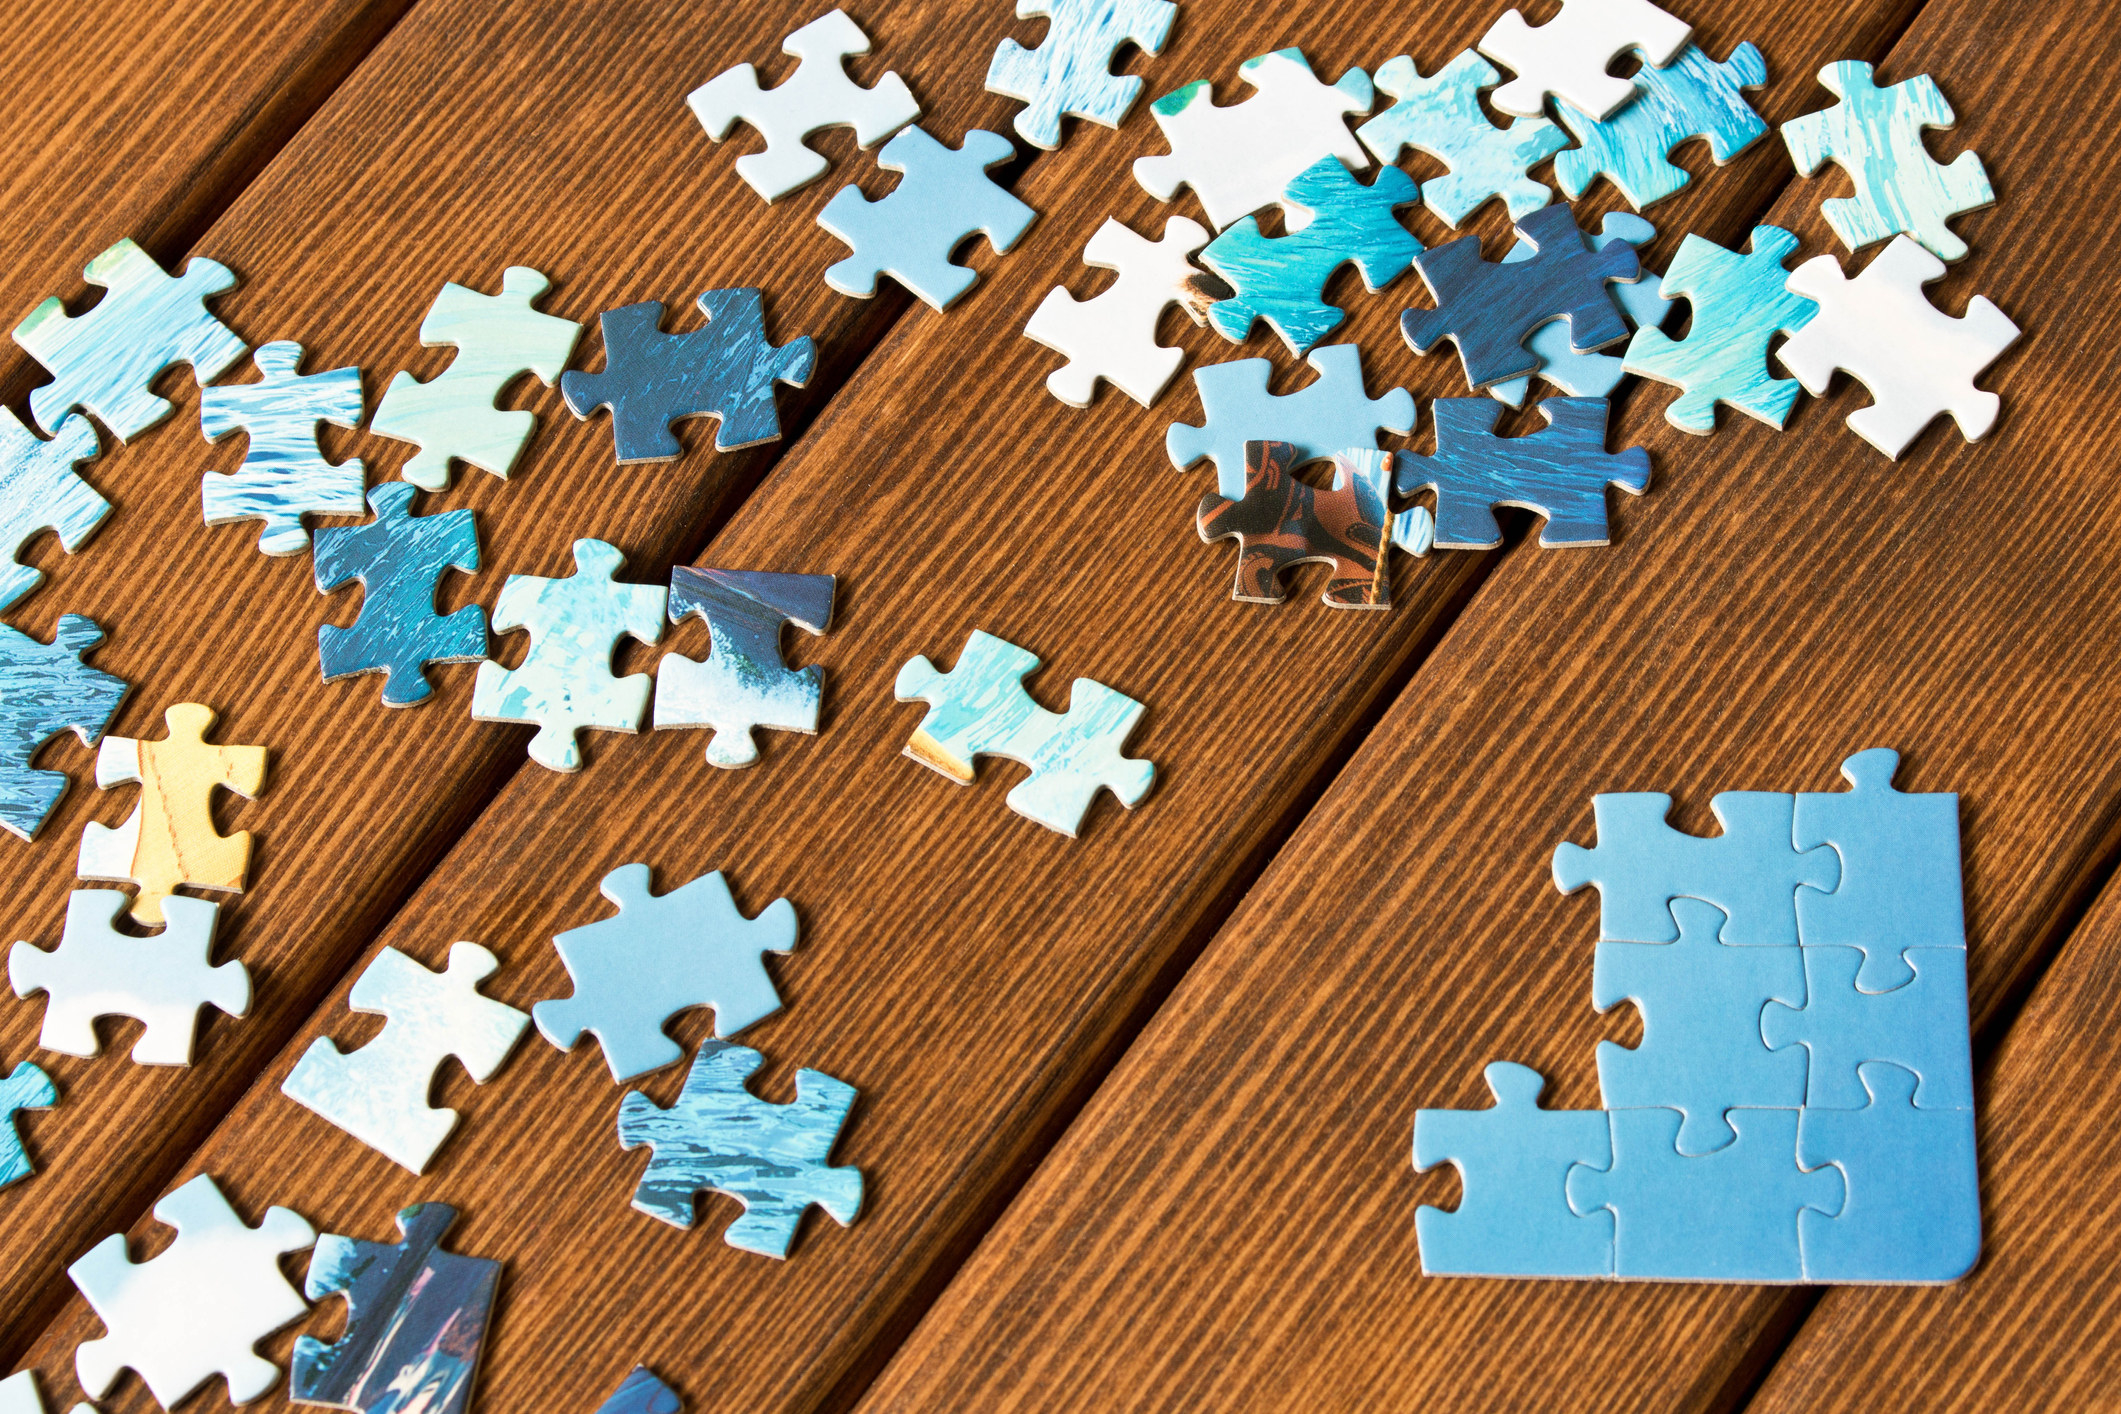 photo of a dissembled blue puzzle slowly being pieced together on top of a brown wooden table